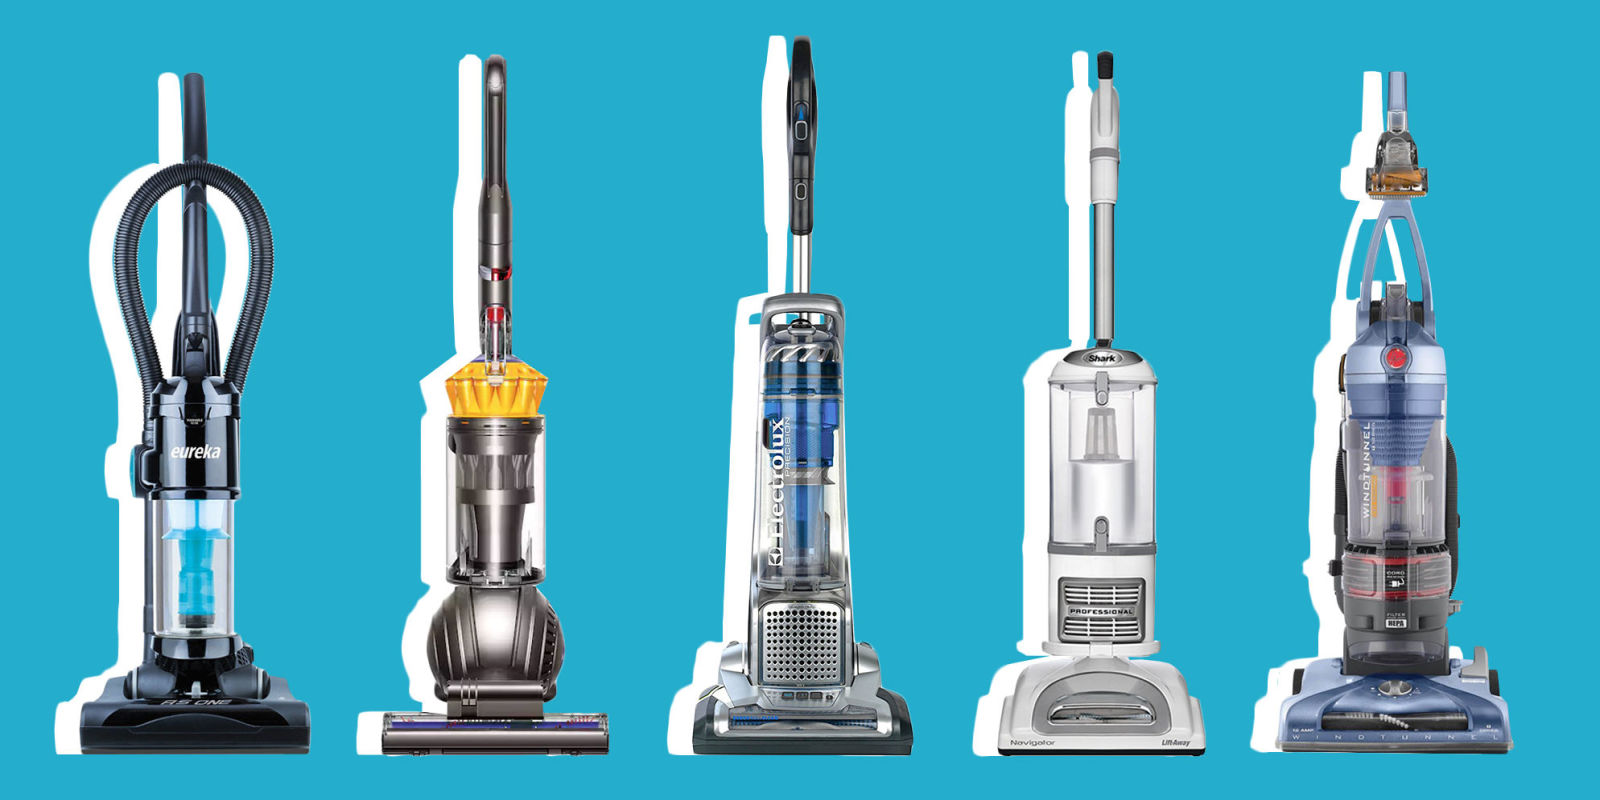 18 Best Vacuum Cleaners Of 2018 Reviews Of Dyson Shark